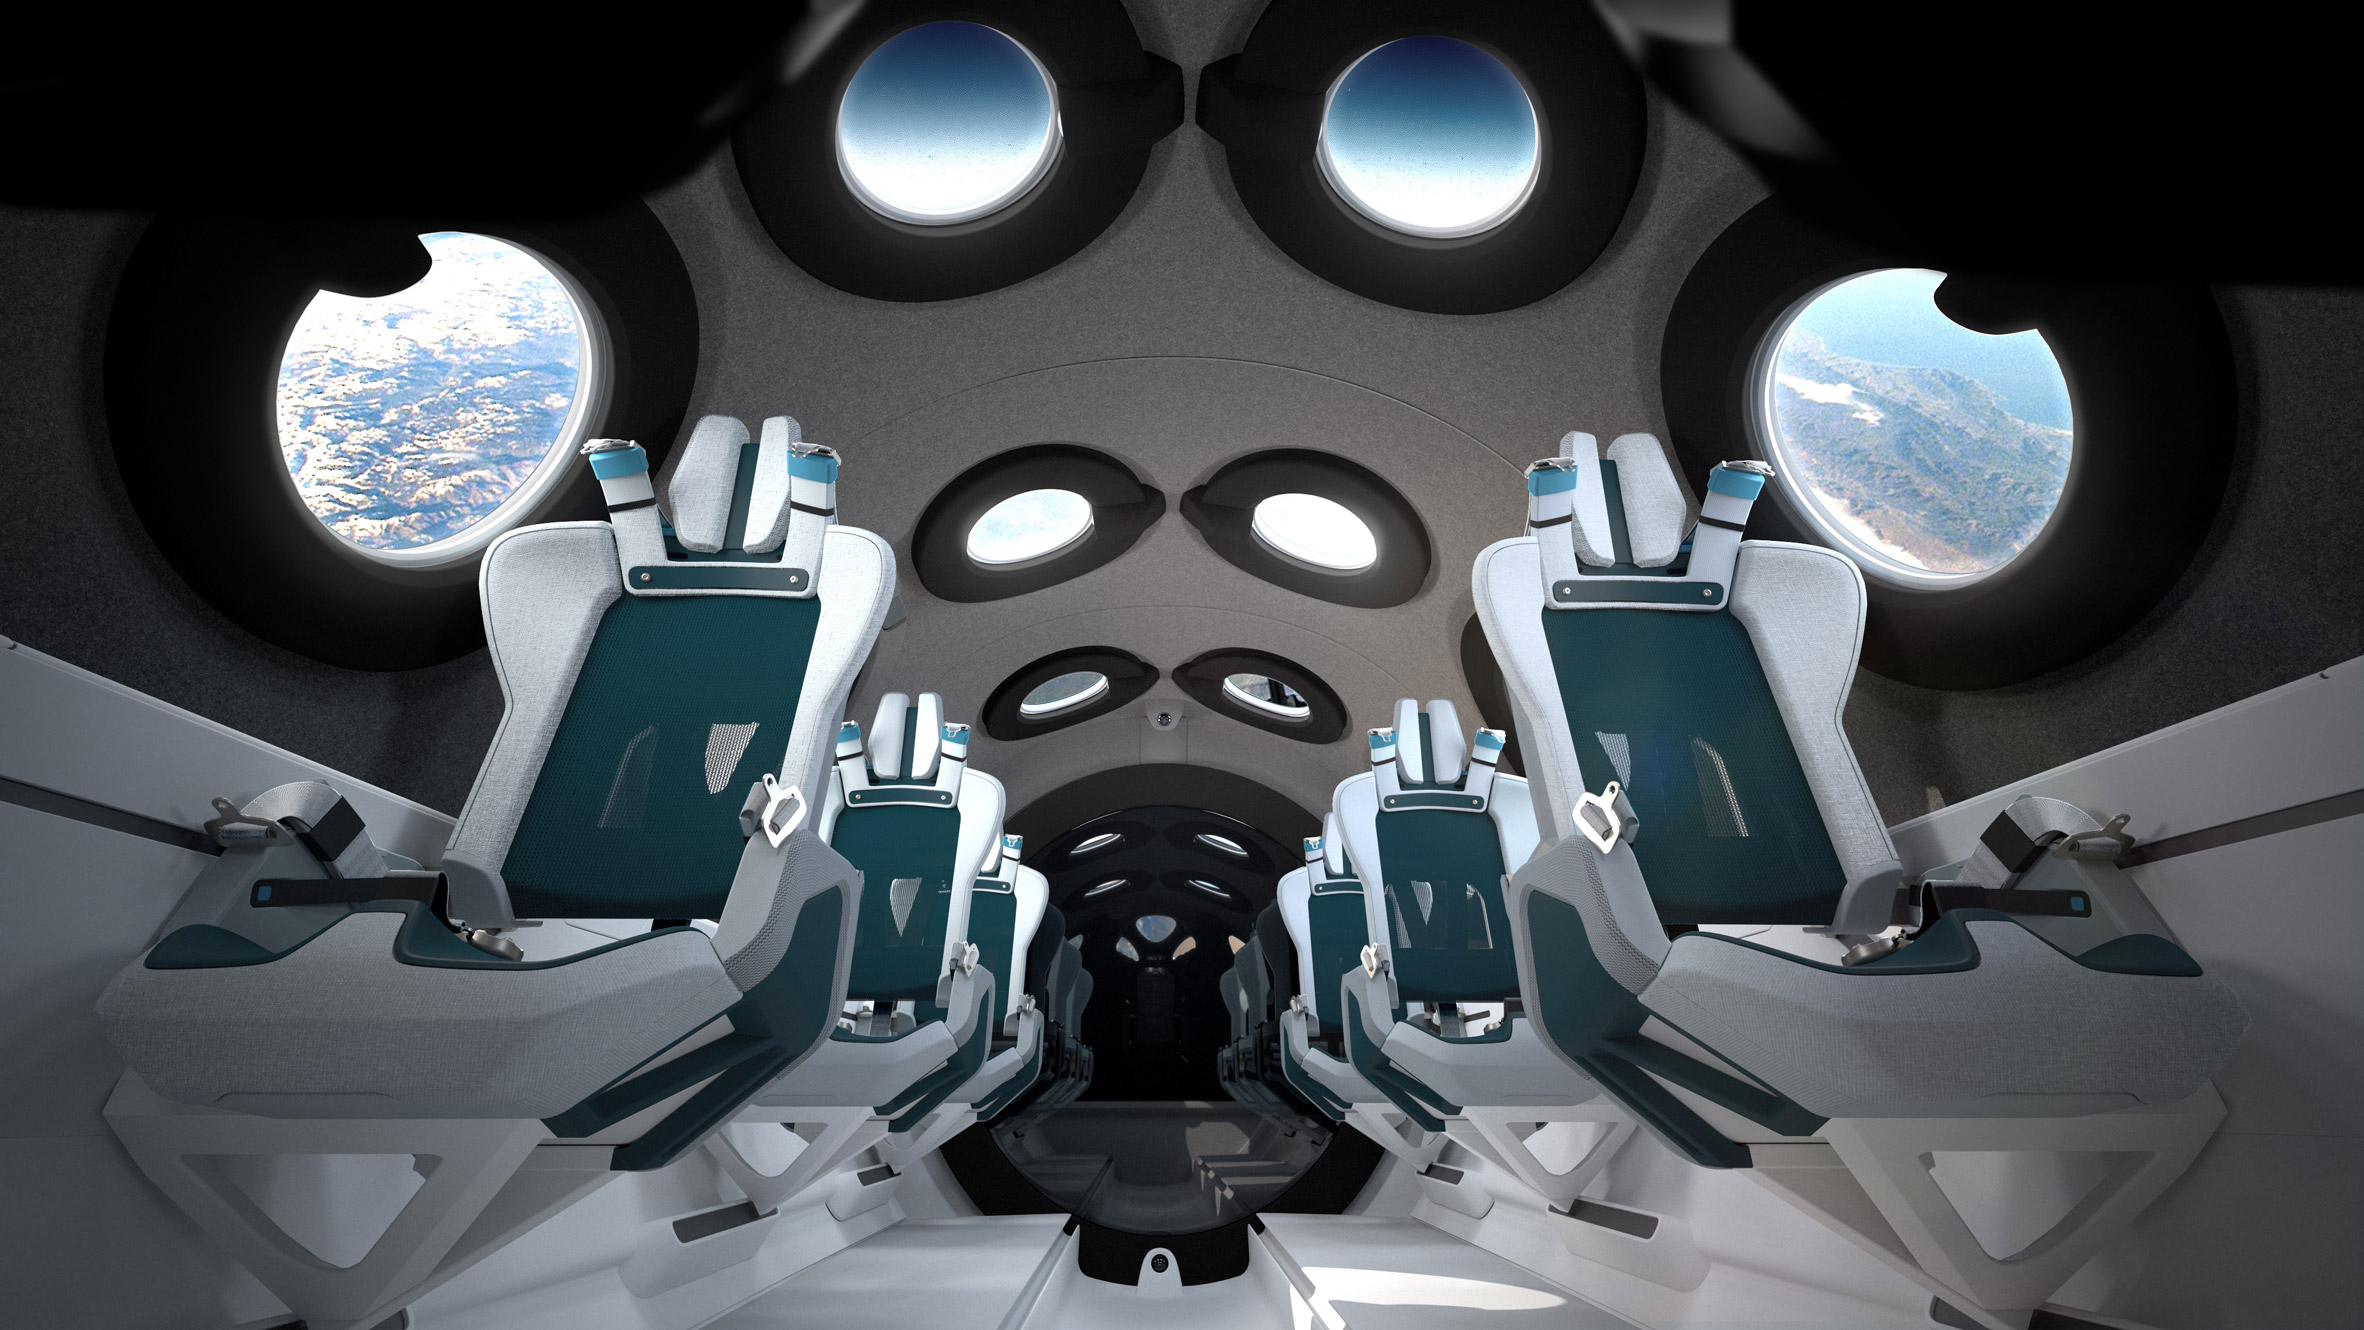 Virgin Galactic unveils SpaceshipTwo cabin interior designed with Seymourpowell